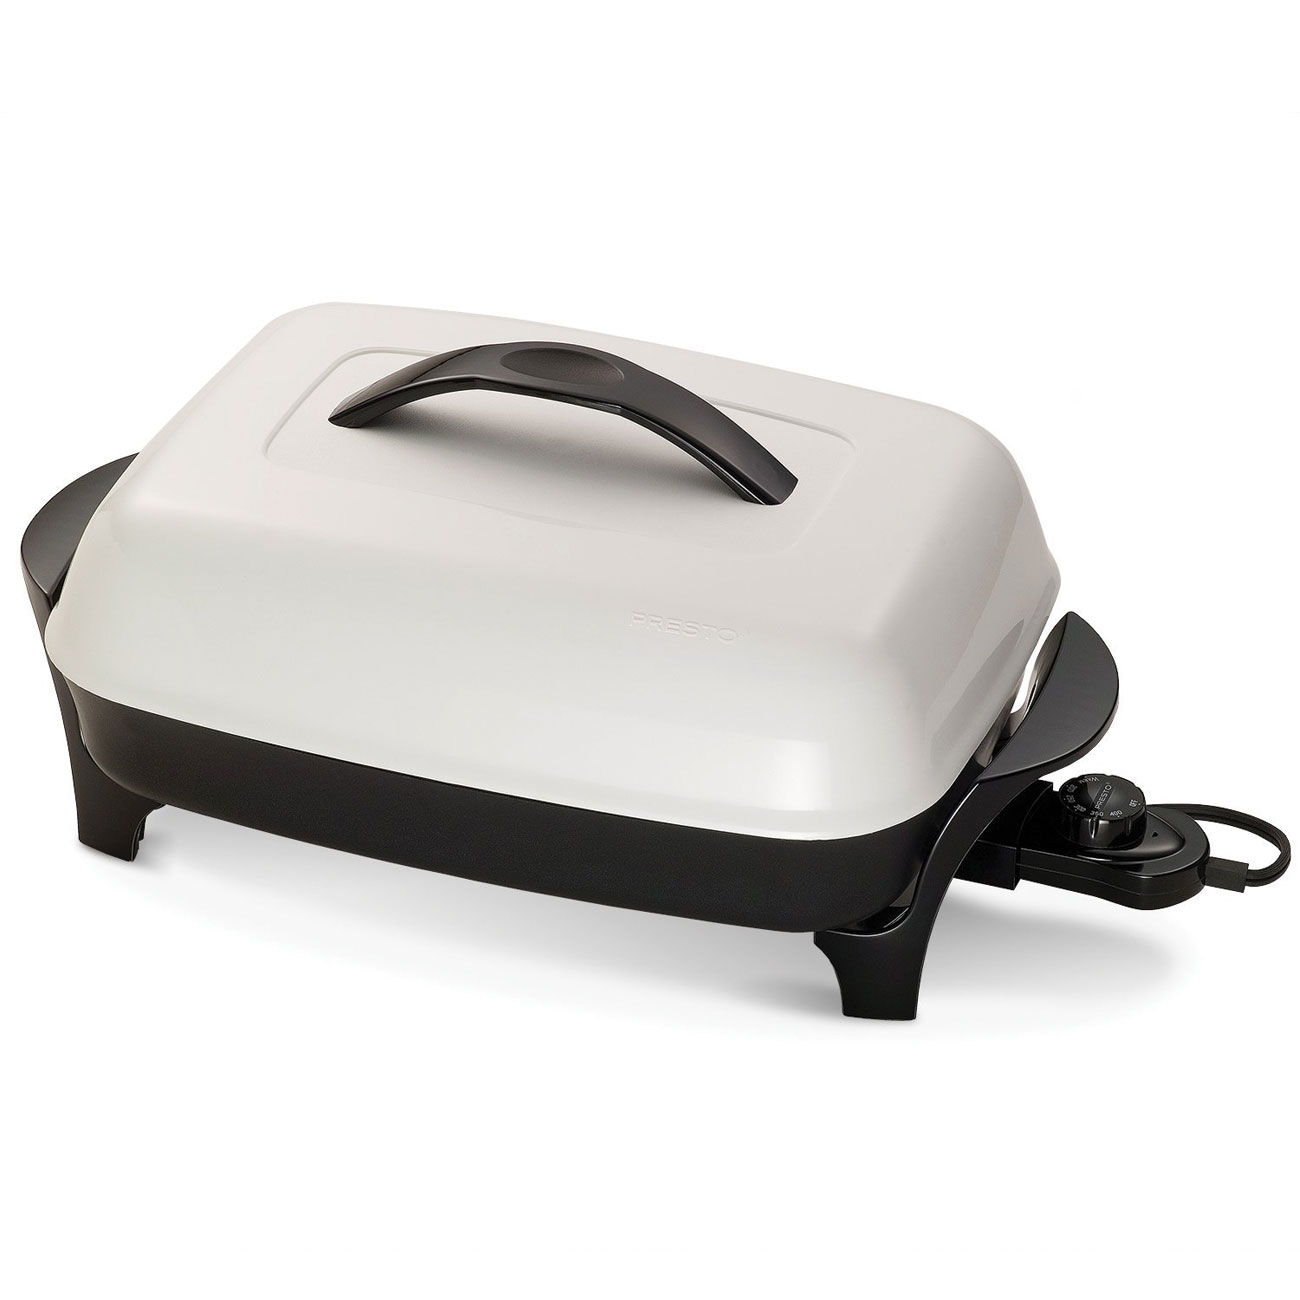 Electric Fry Pan with Tactile Dial Price: $44.95